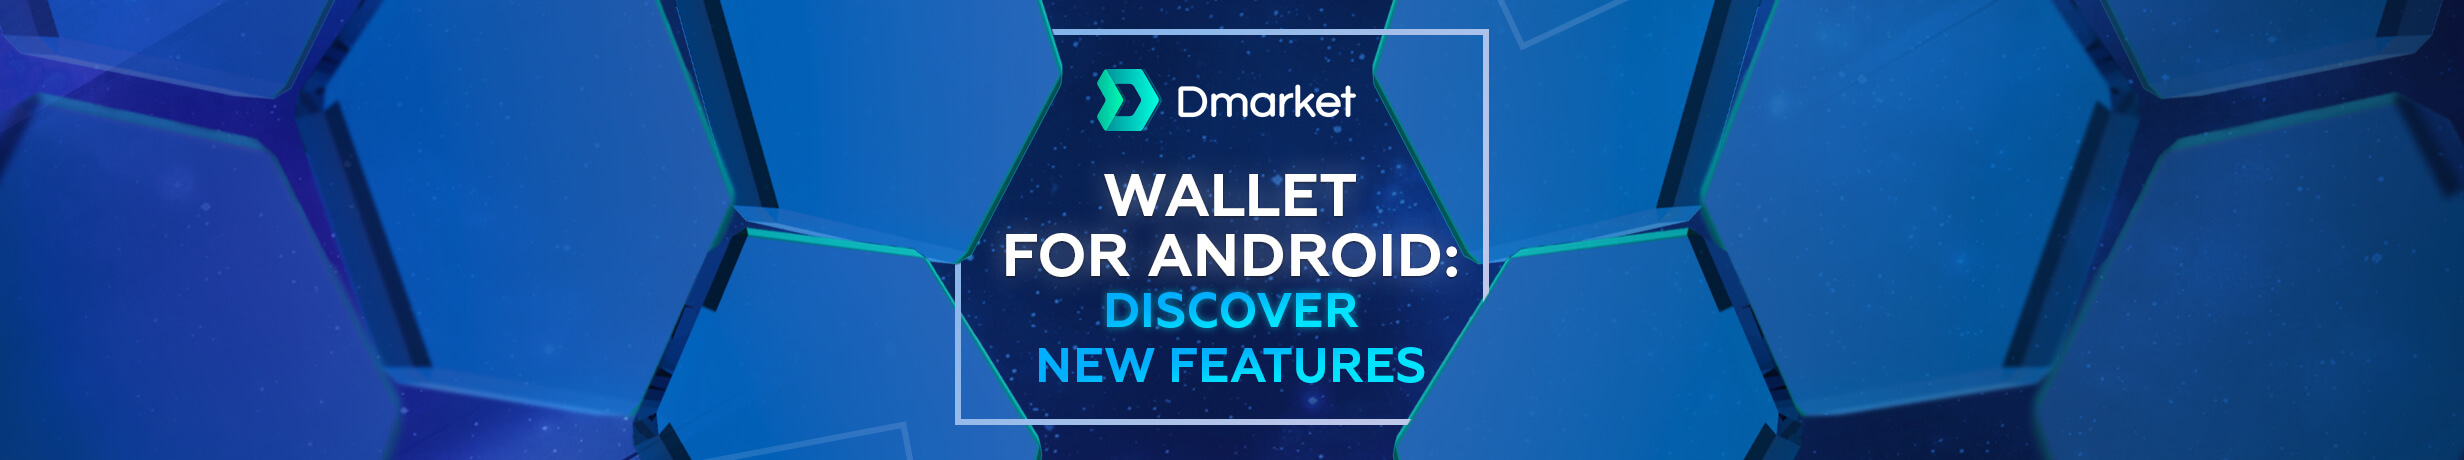 DMarket Wallet for Android: Discover New Features